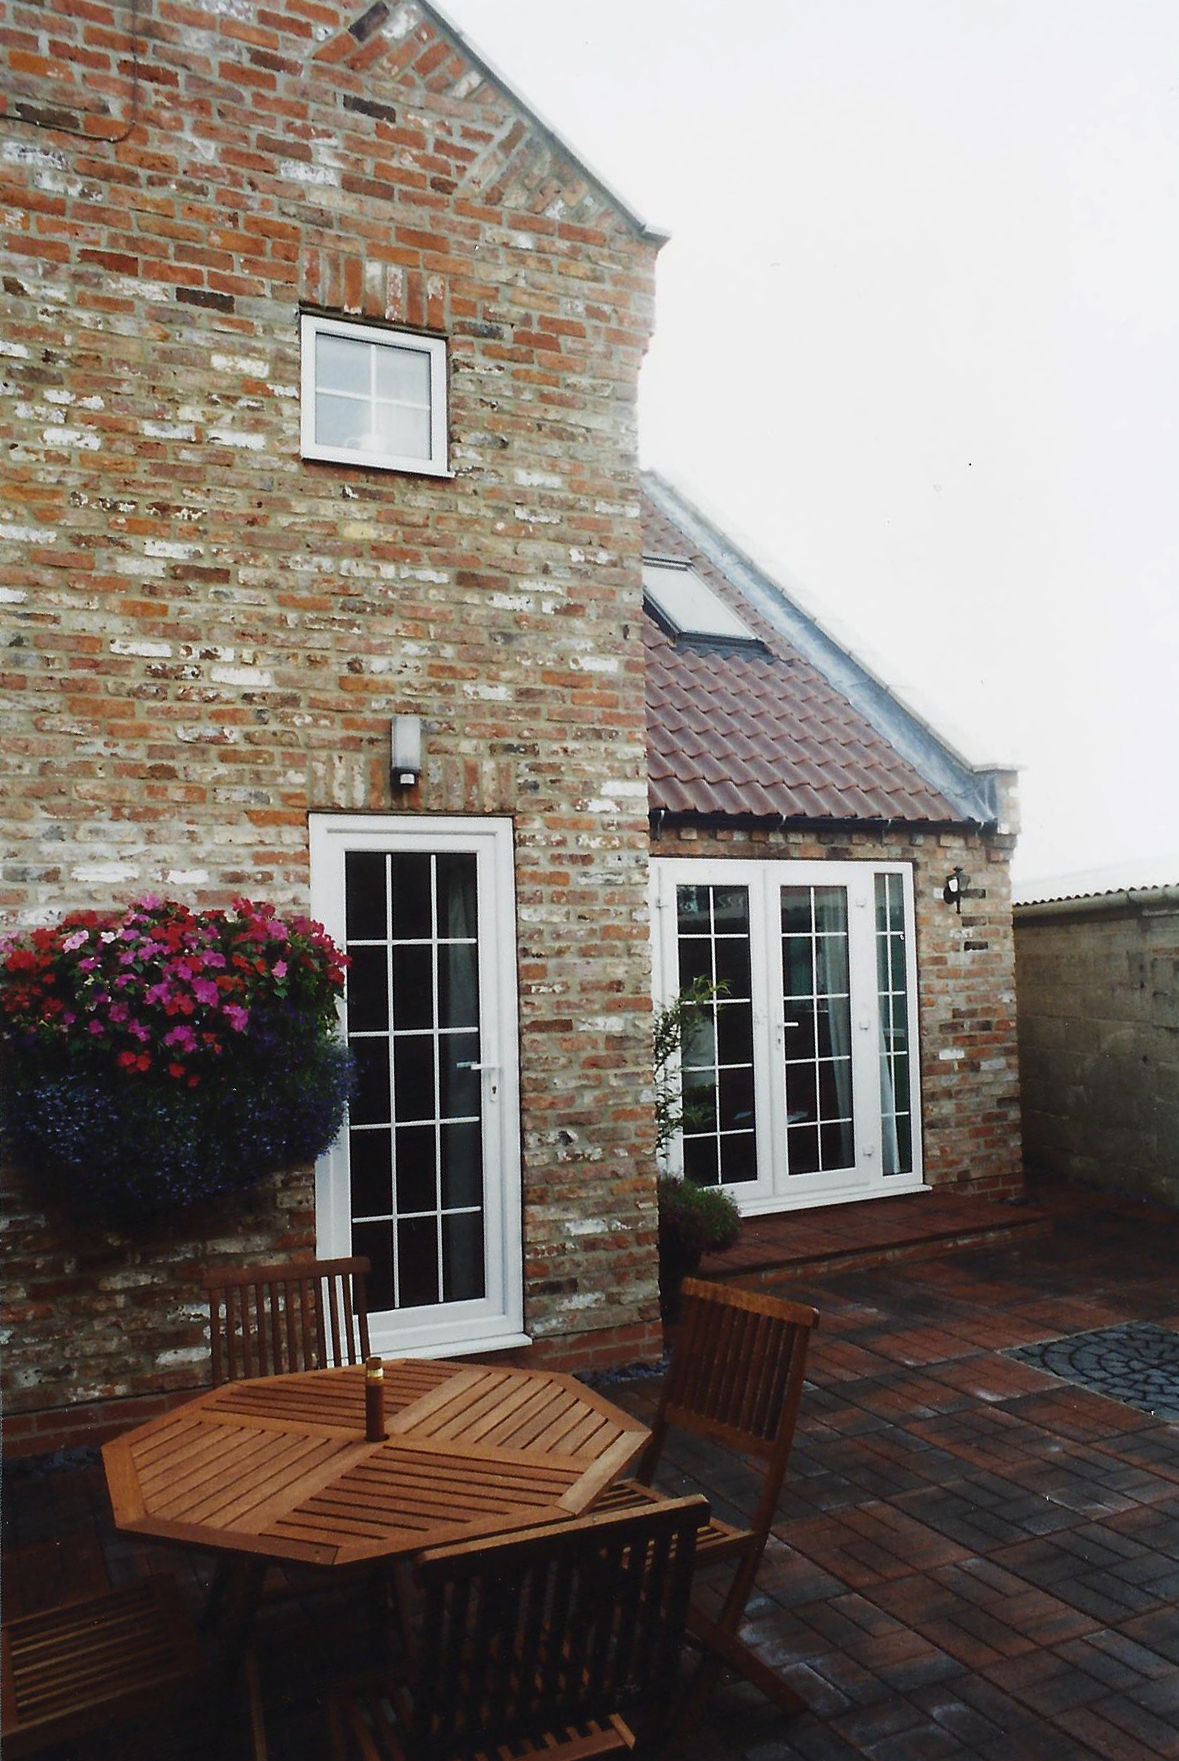 Exterior 1 - Laurel Cottage - Hornsea Architects - Samuel Kendall Associates.jpg